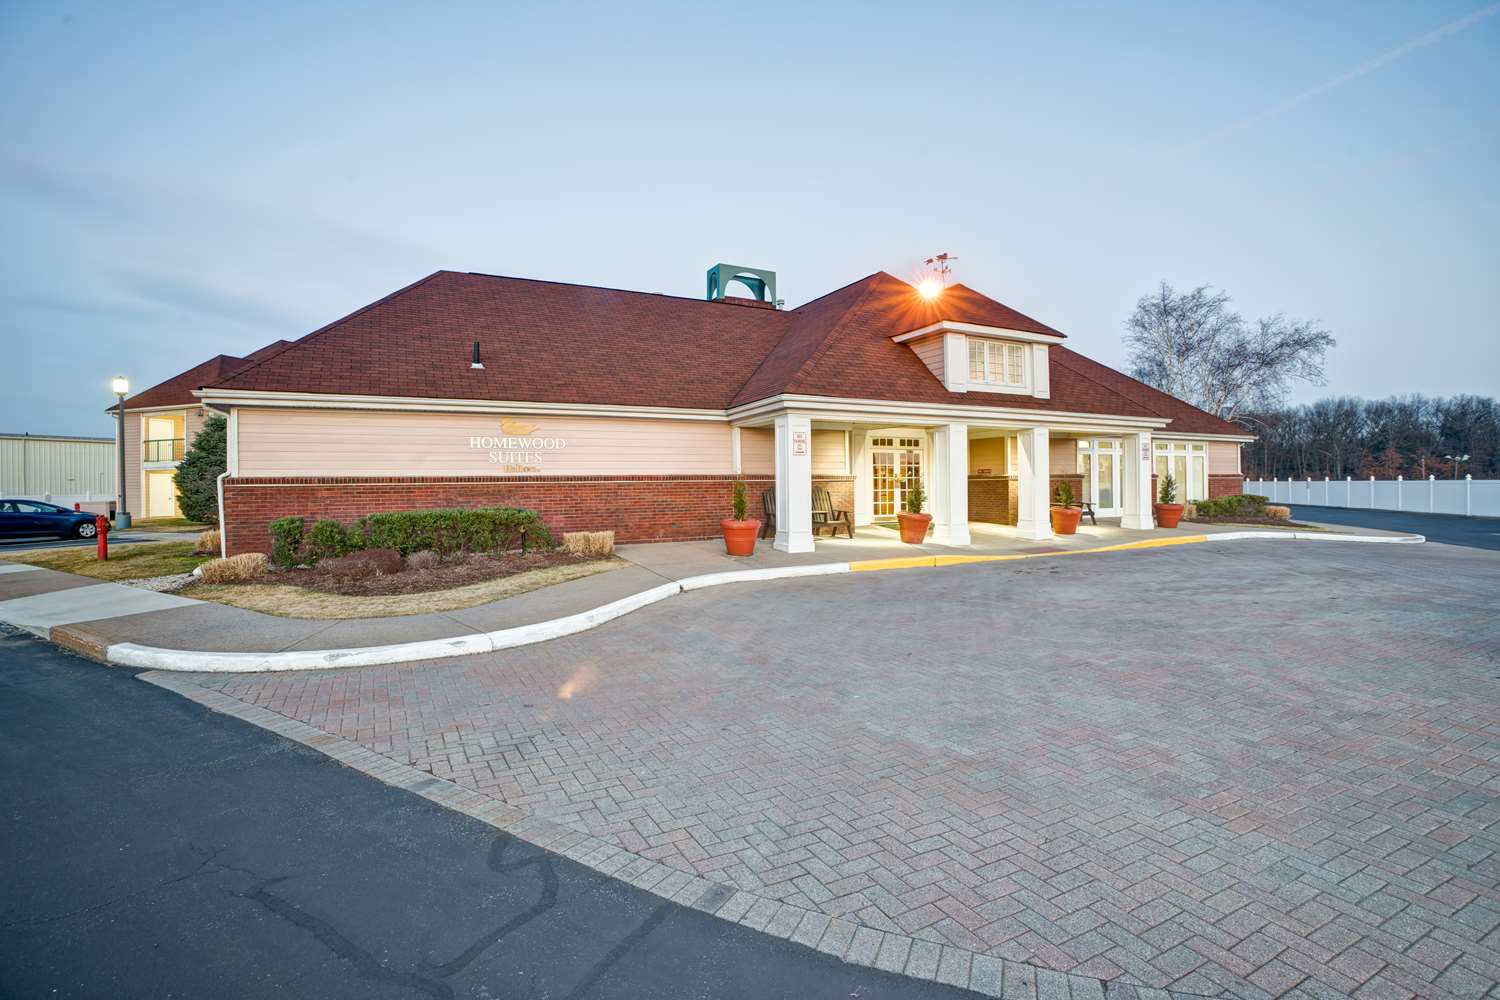 Homewood Suites by Hilton Windsor Locks